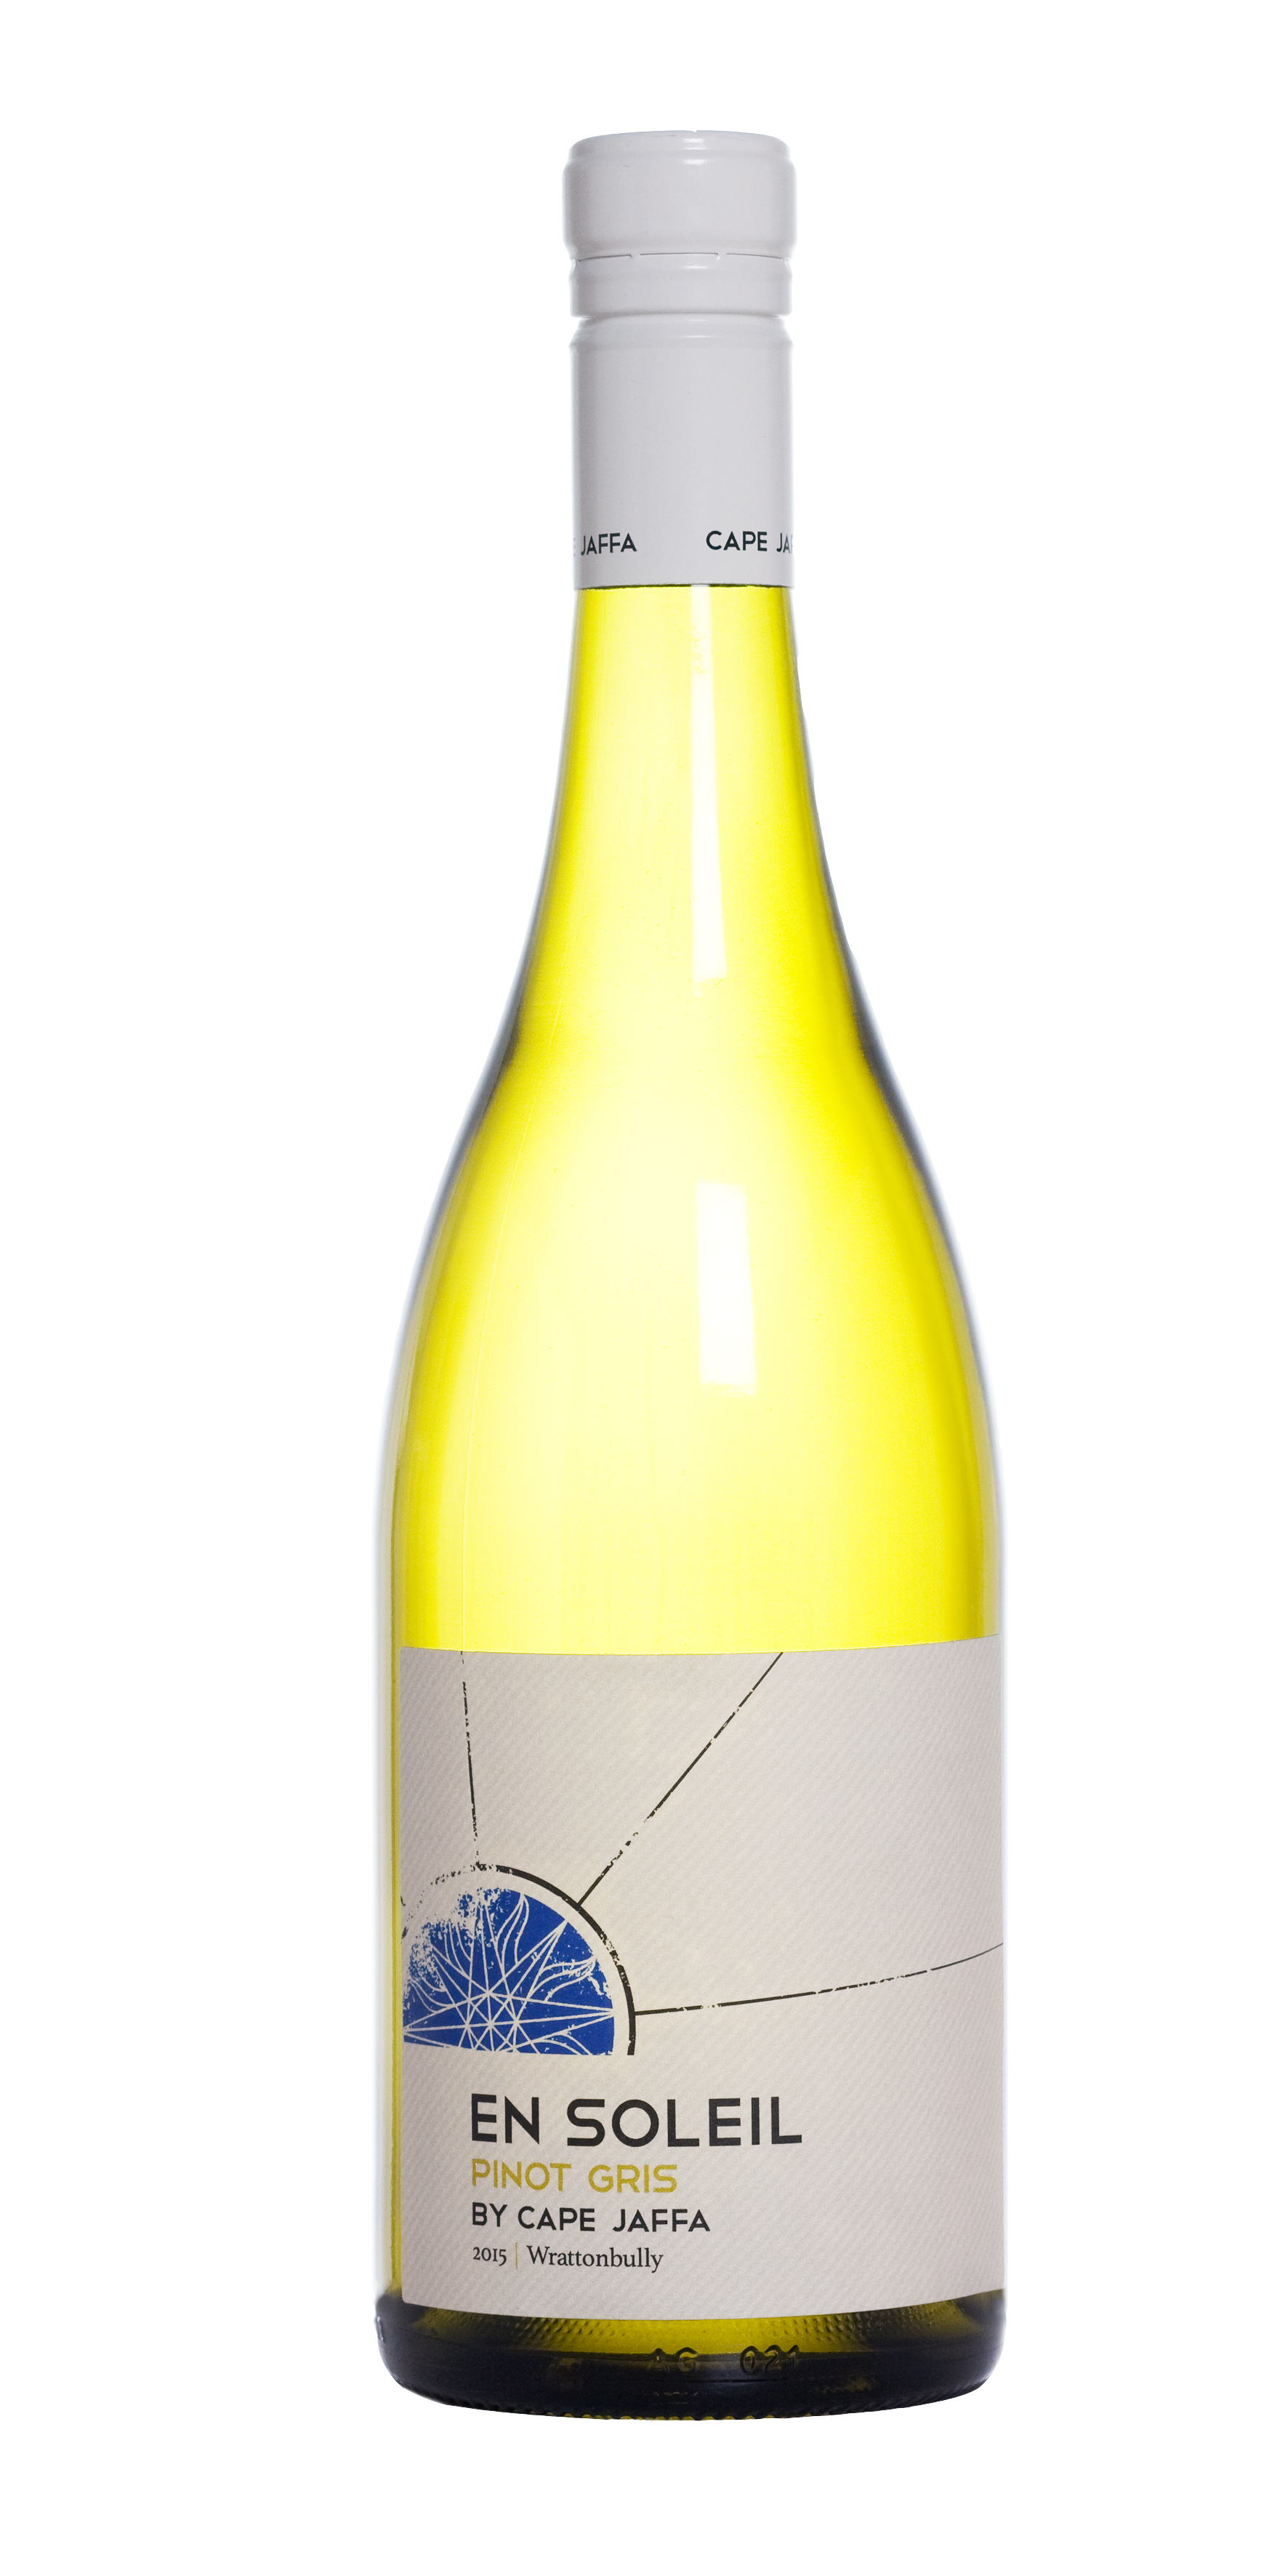 A Rewarding Bio-dynamic Pinot Gris